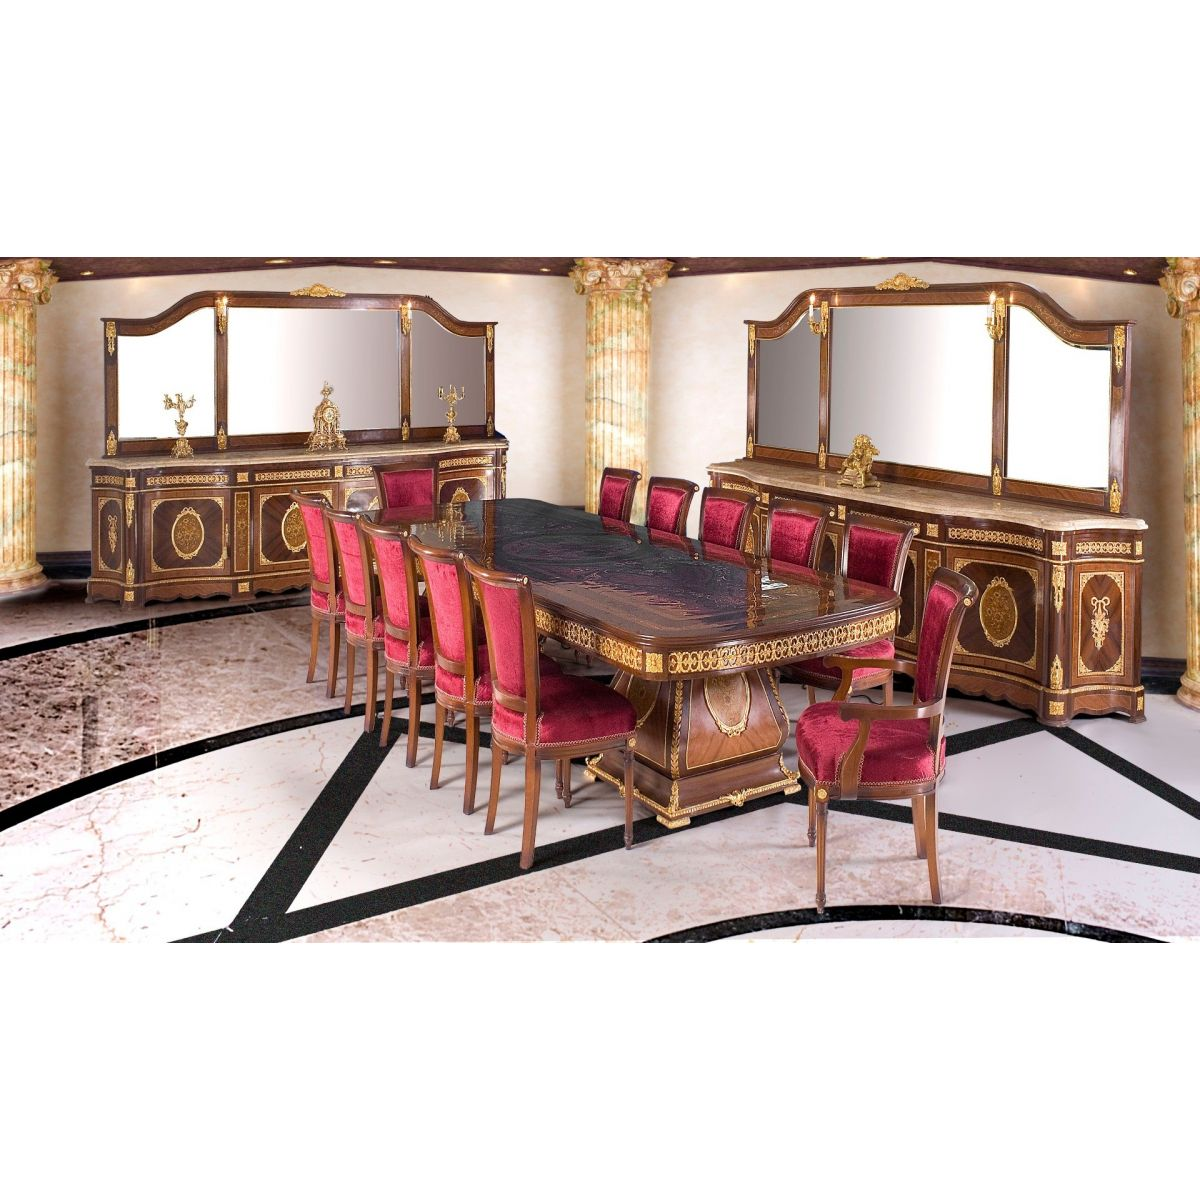 Σετ Τραπεζαρίας Palace of Fontainebleau  M-DR1596-Dining Set M-DR1596